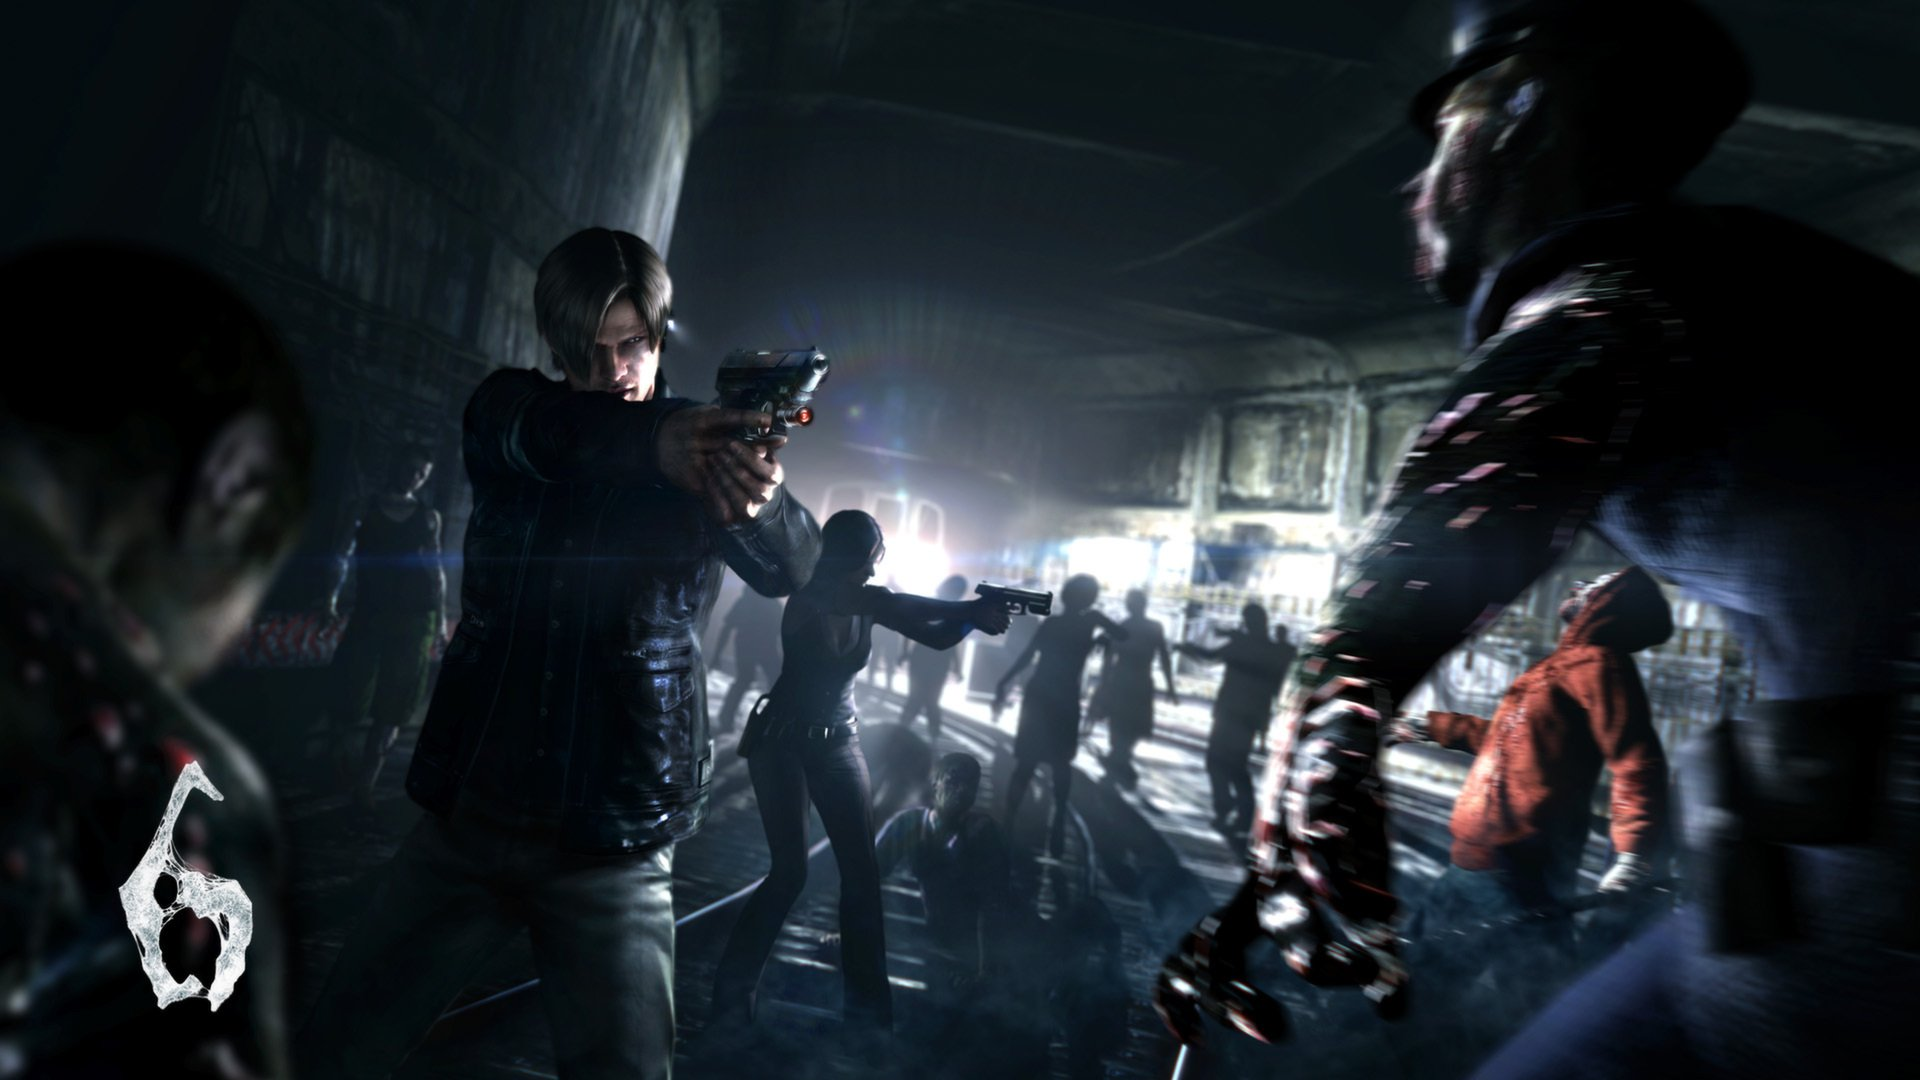 It's mostly Resident Evil and Dead Rising in Capcom's new Humble Bundle screenshot